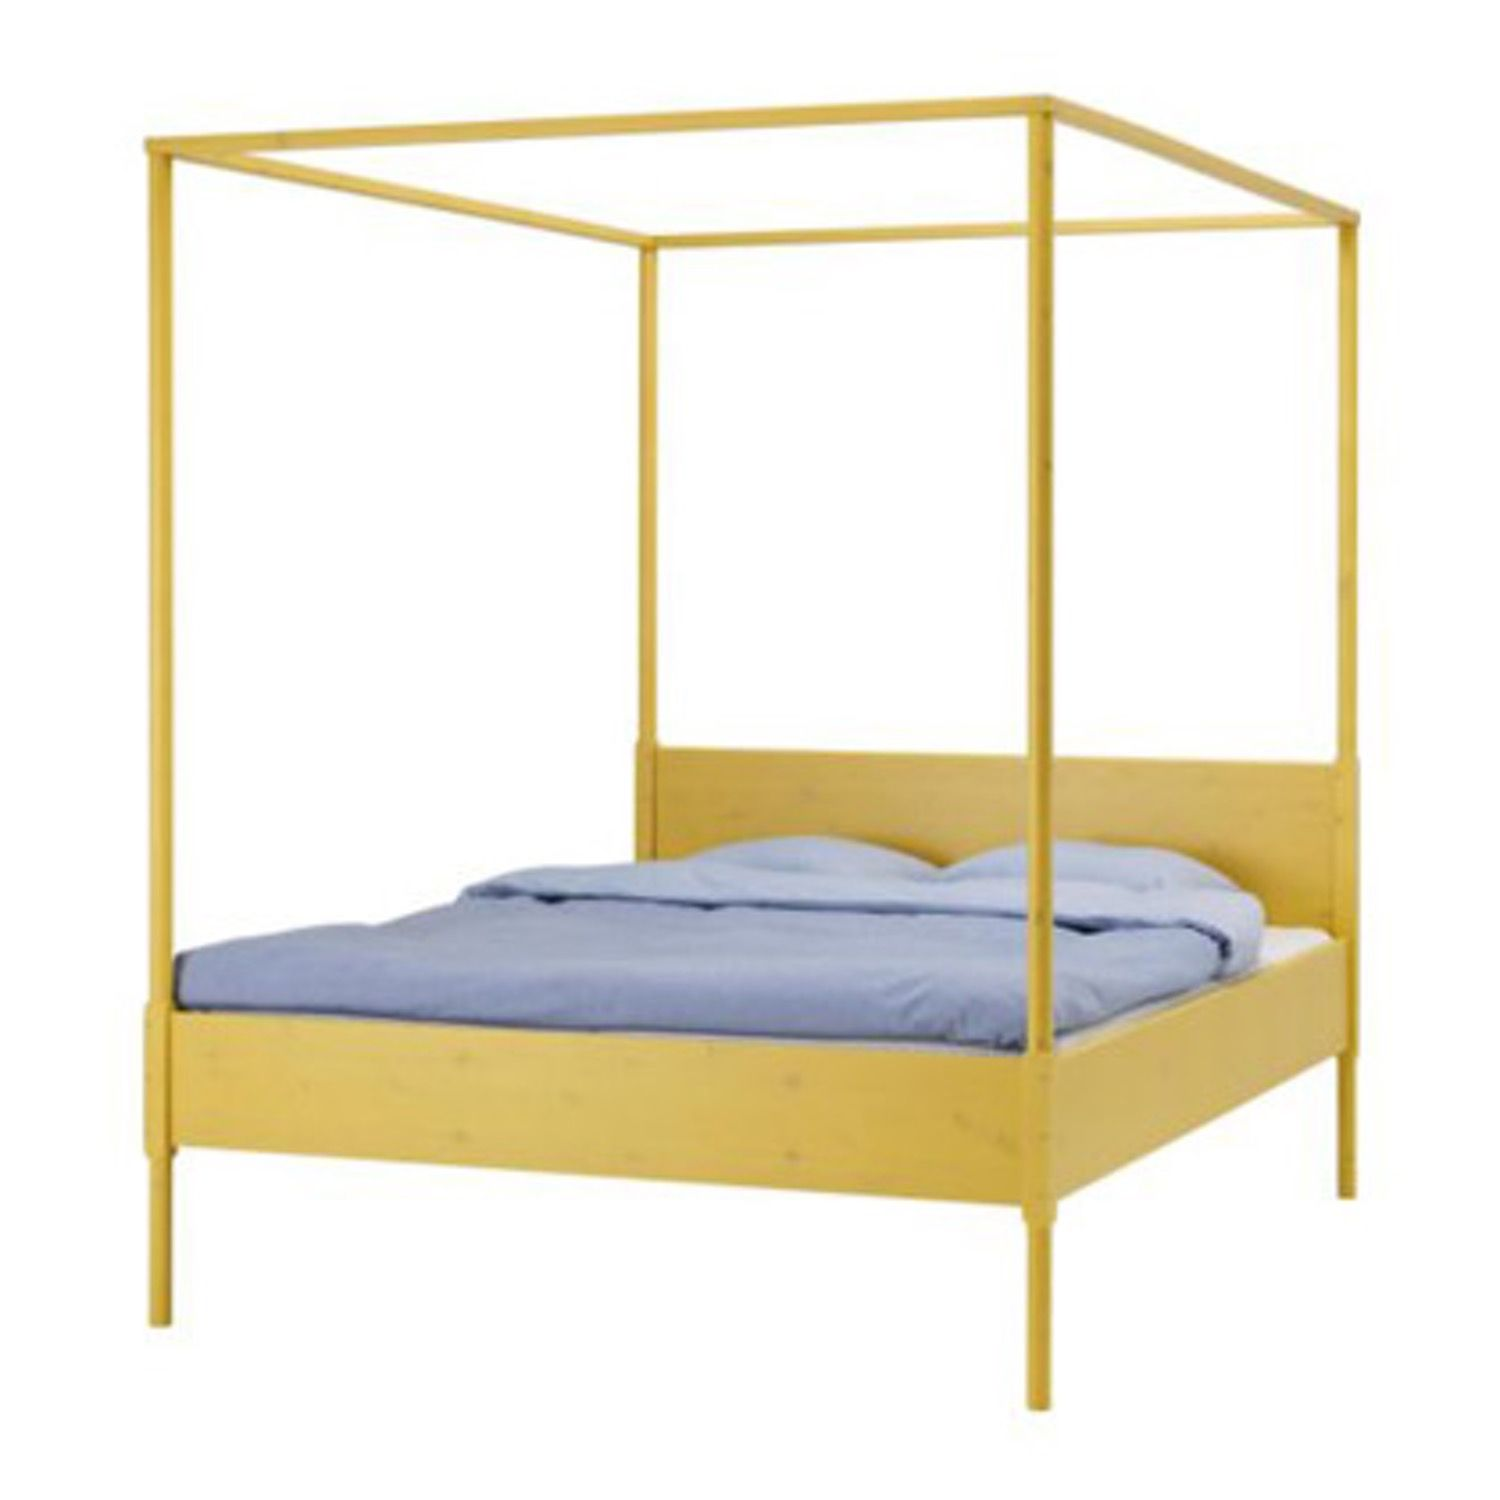 Hemnes Four Poster Bed Frame At Ikea Four Poster Bed Ikea